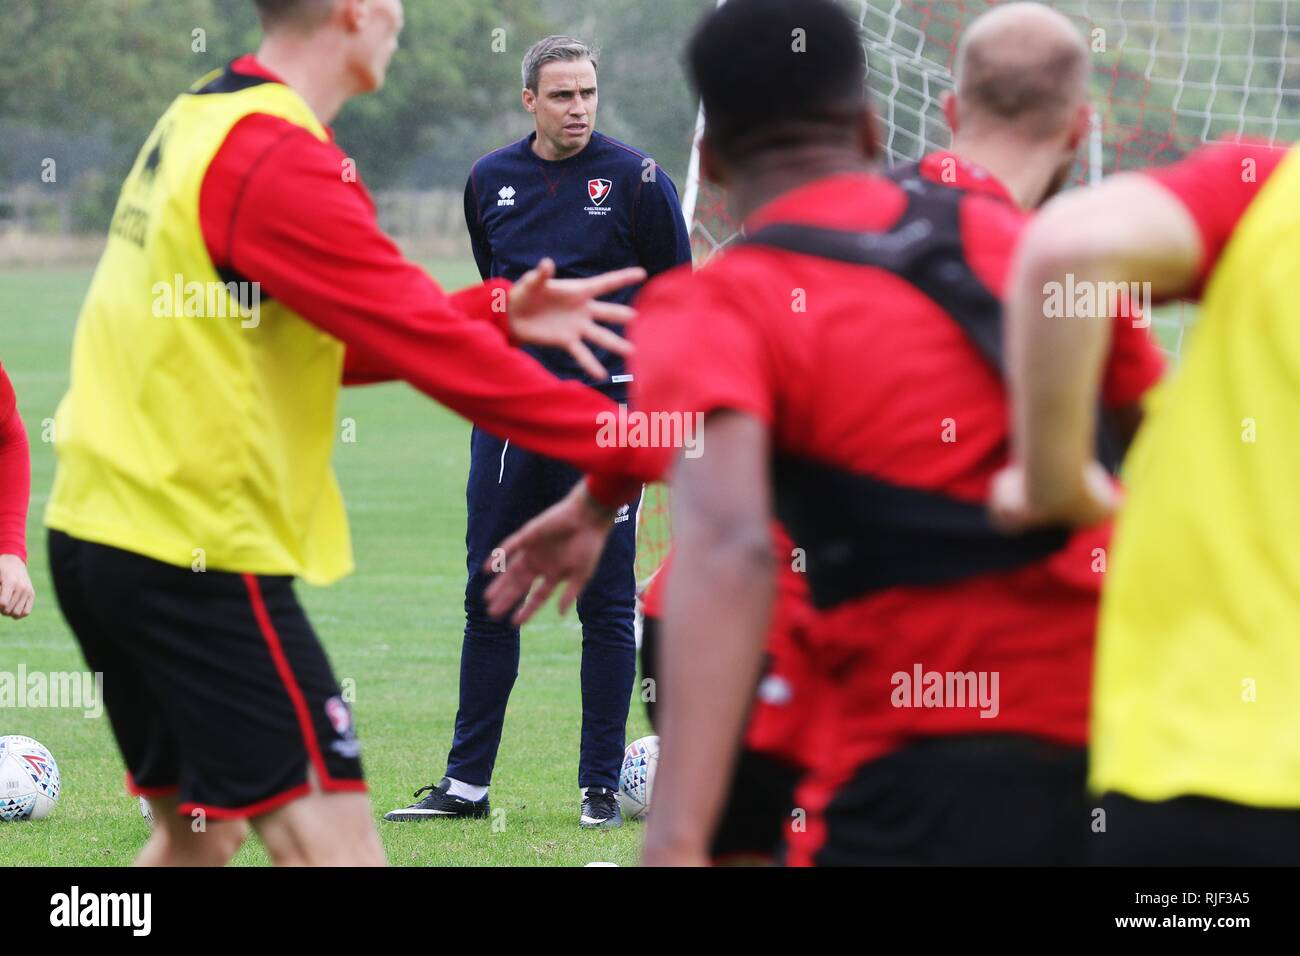 Cheltenha Town FC's new first team manager Michael Duff takes training for the first time - 11.9.2018  Picture by Antony Thompson - Thousand Word Medi - Stock Image